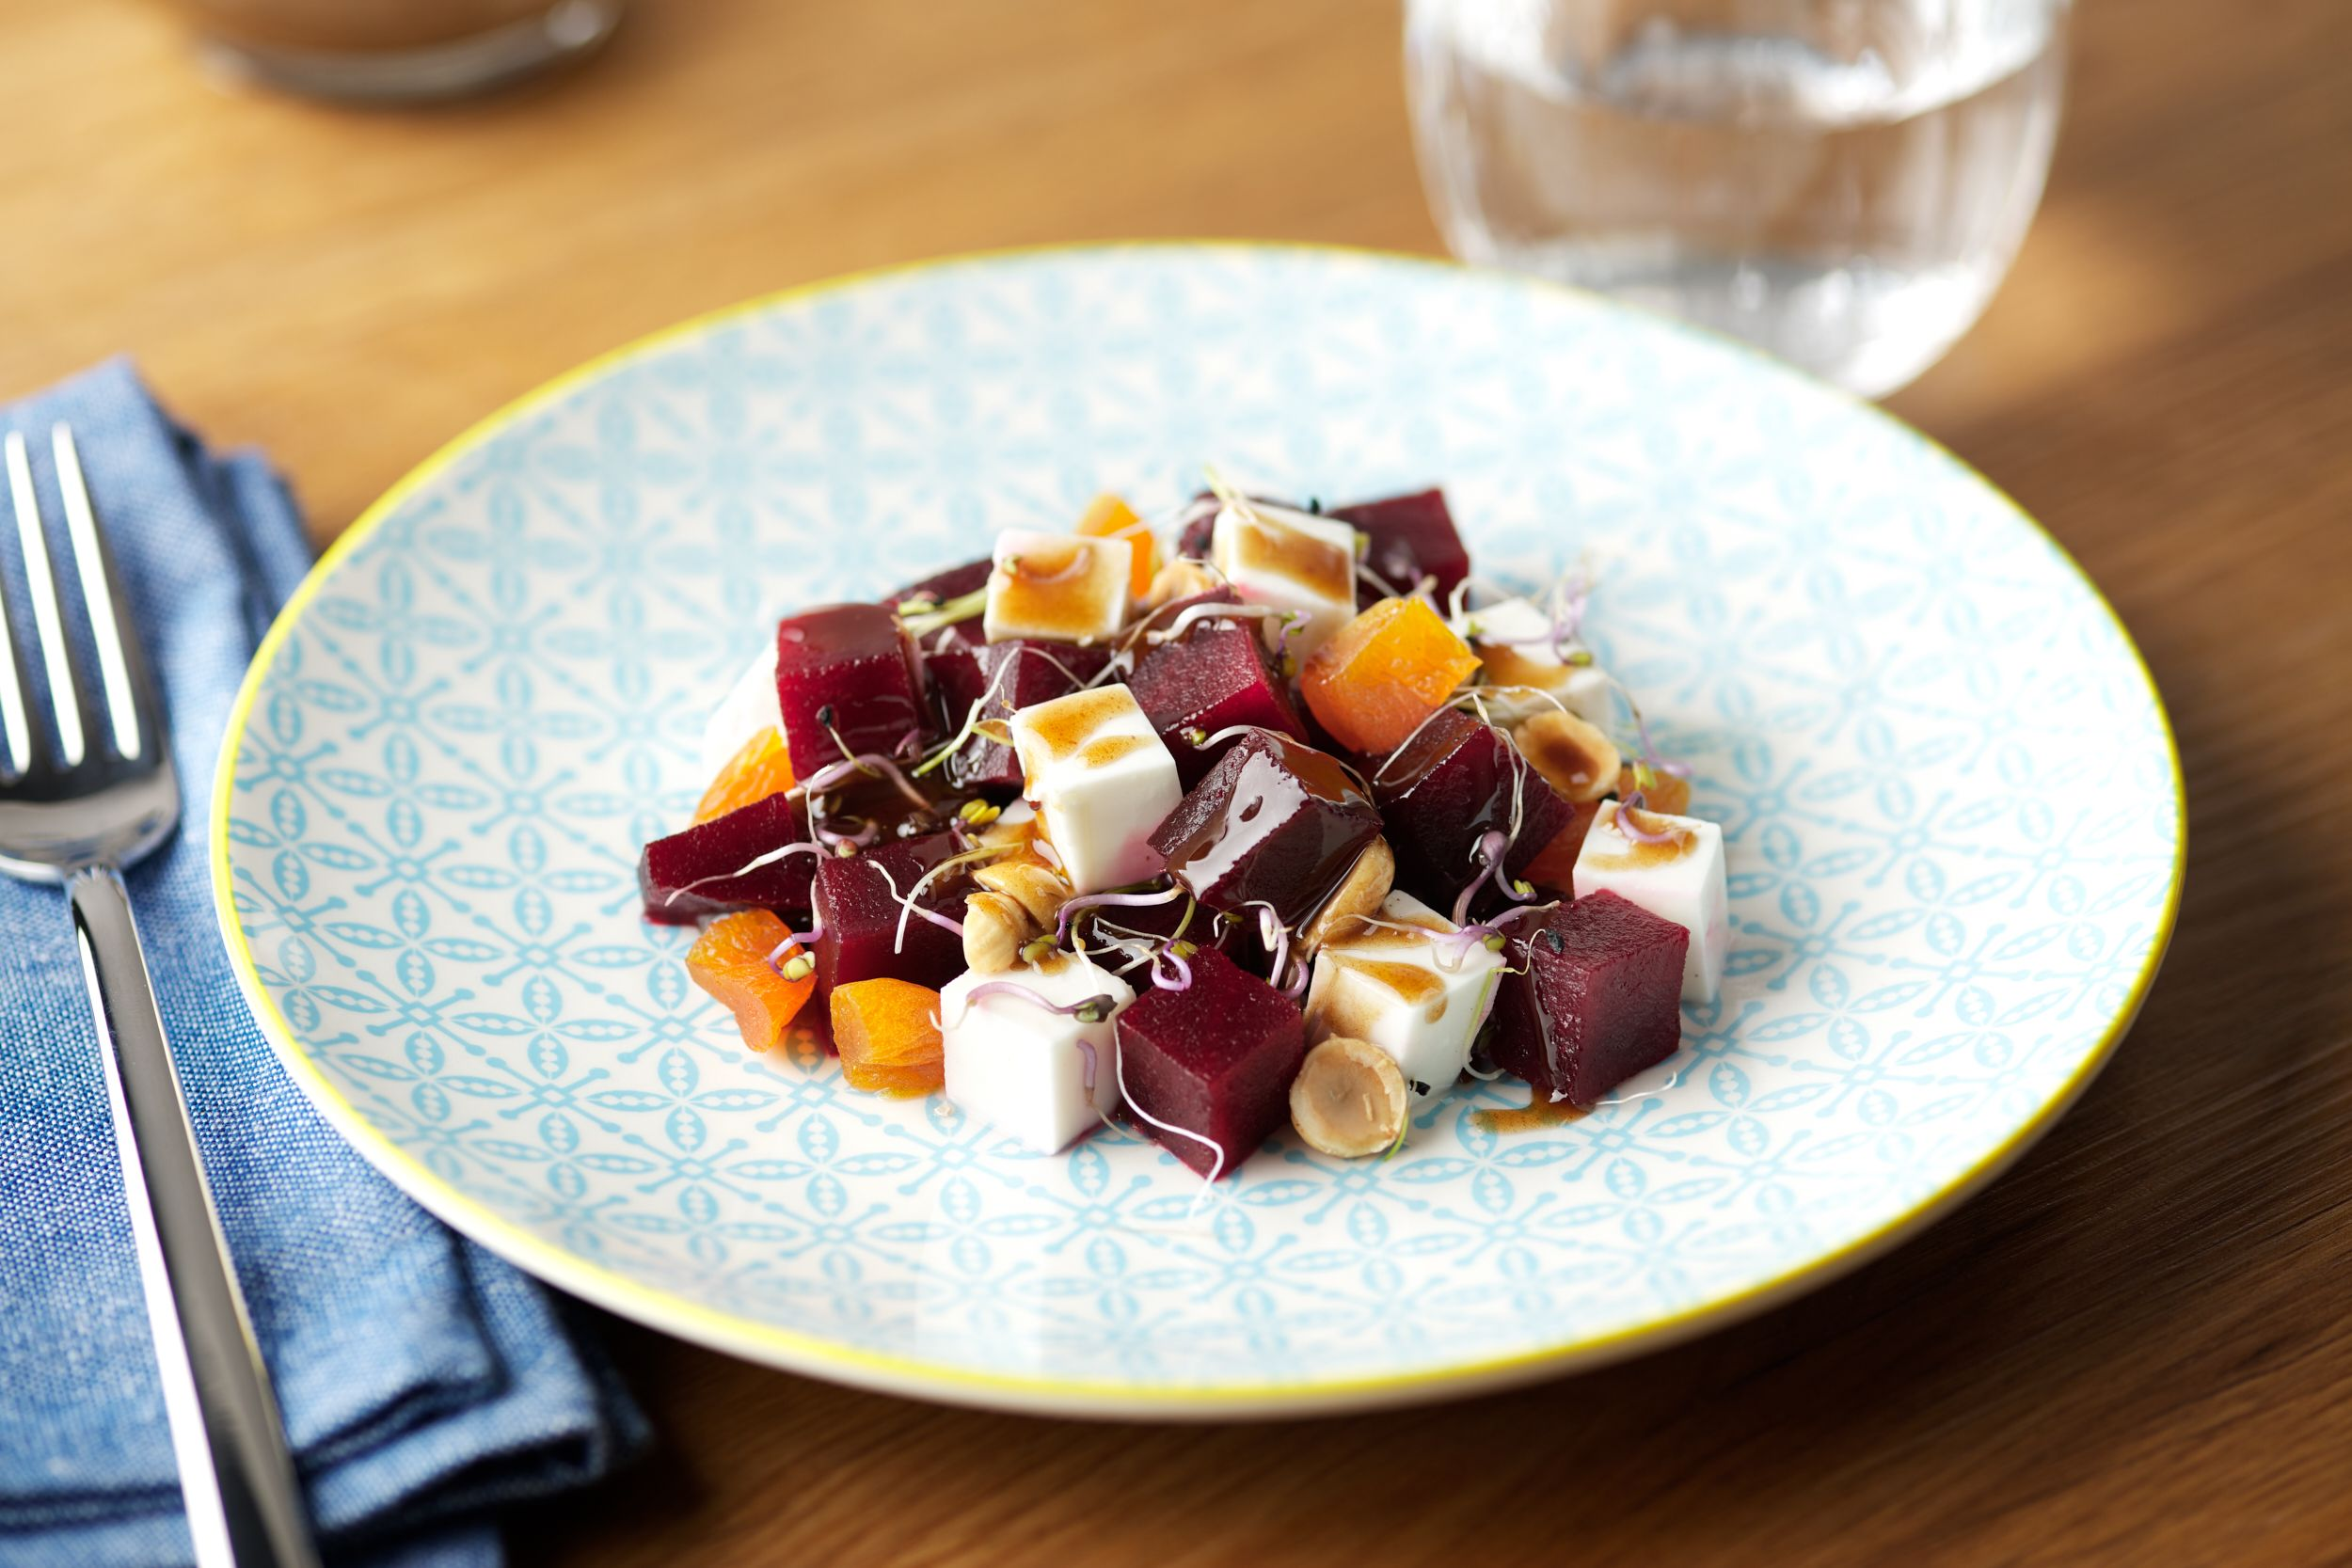 Beetroot salad with dried apricots and hazelnuts